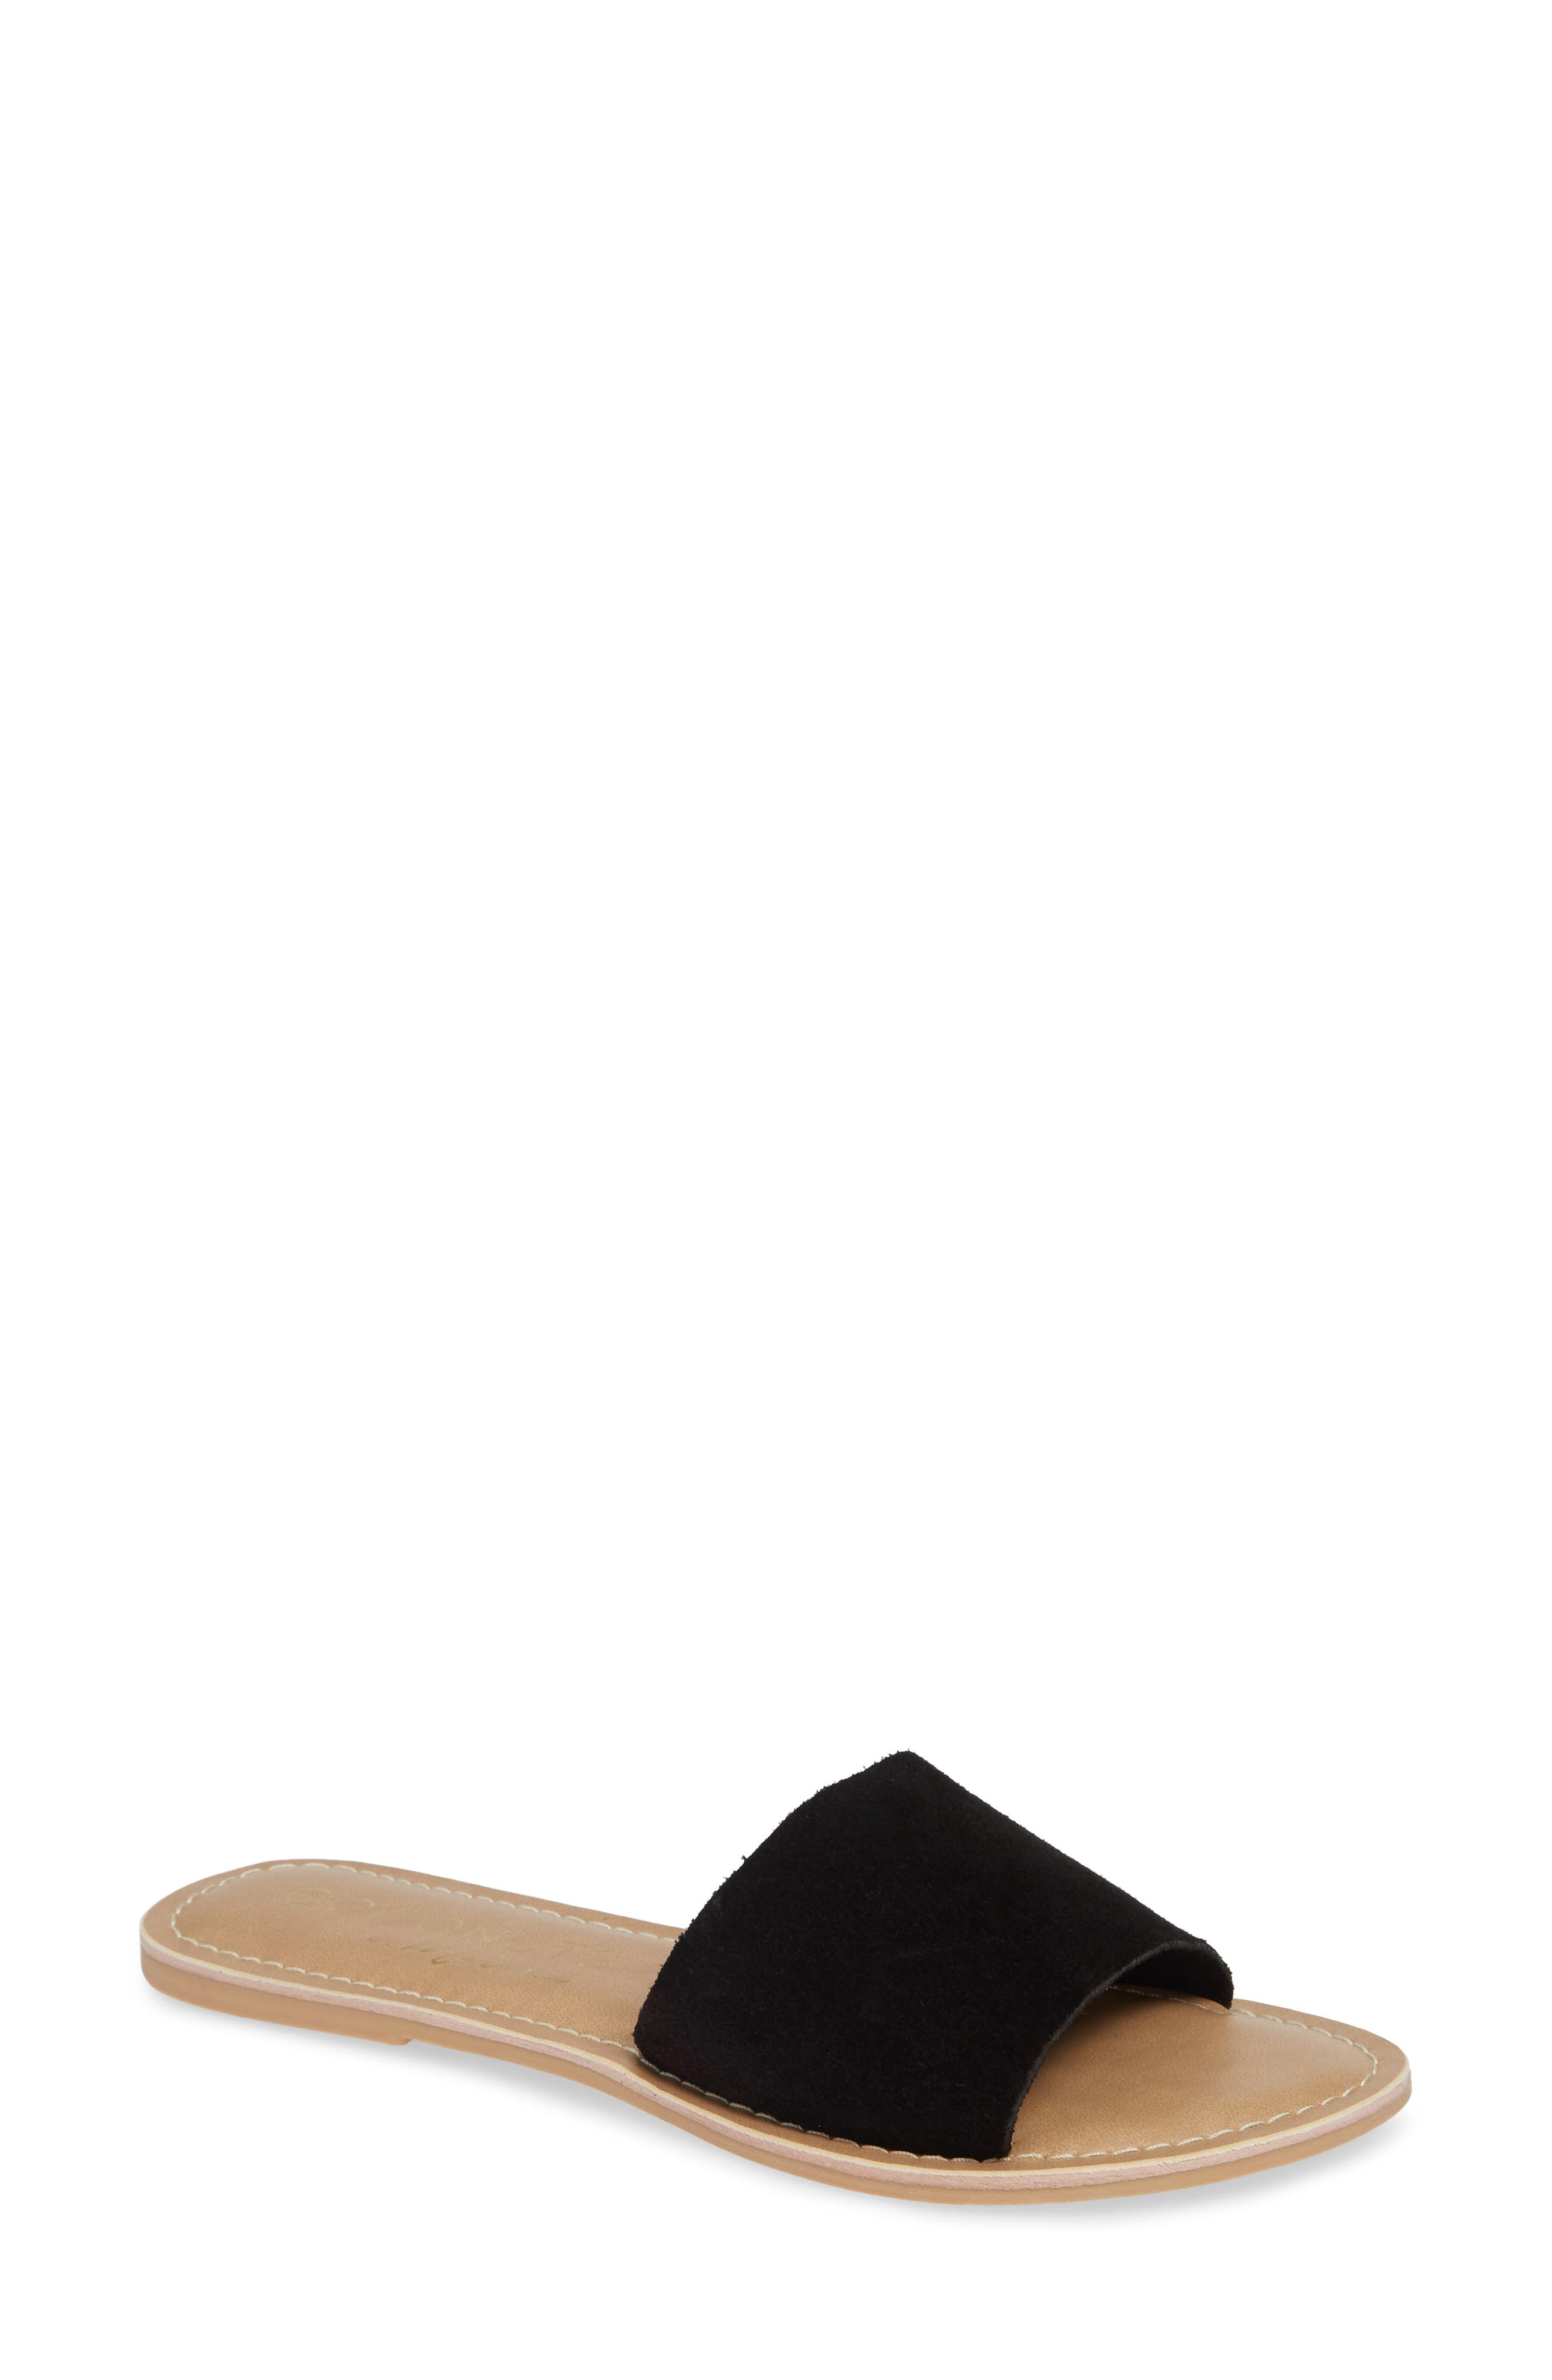 Cabana Slide Sandal,                         Main,                         color, BLACK SUEDE